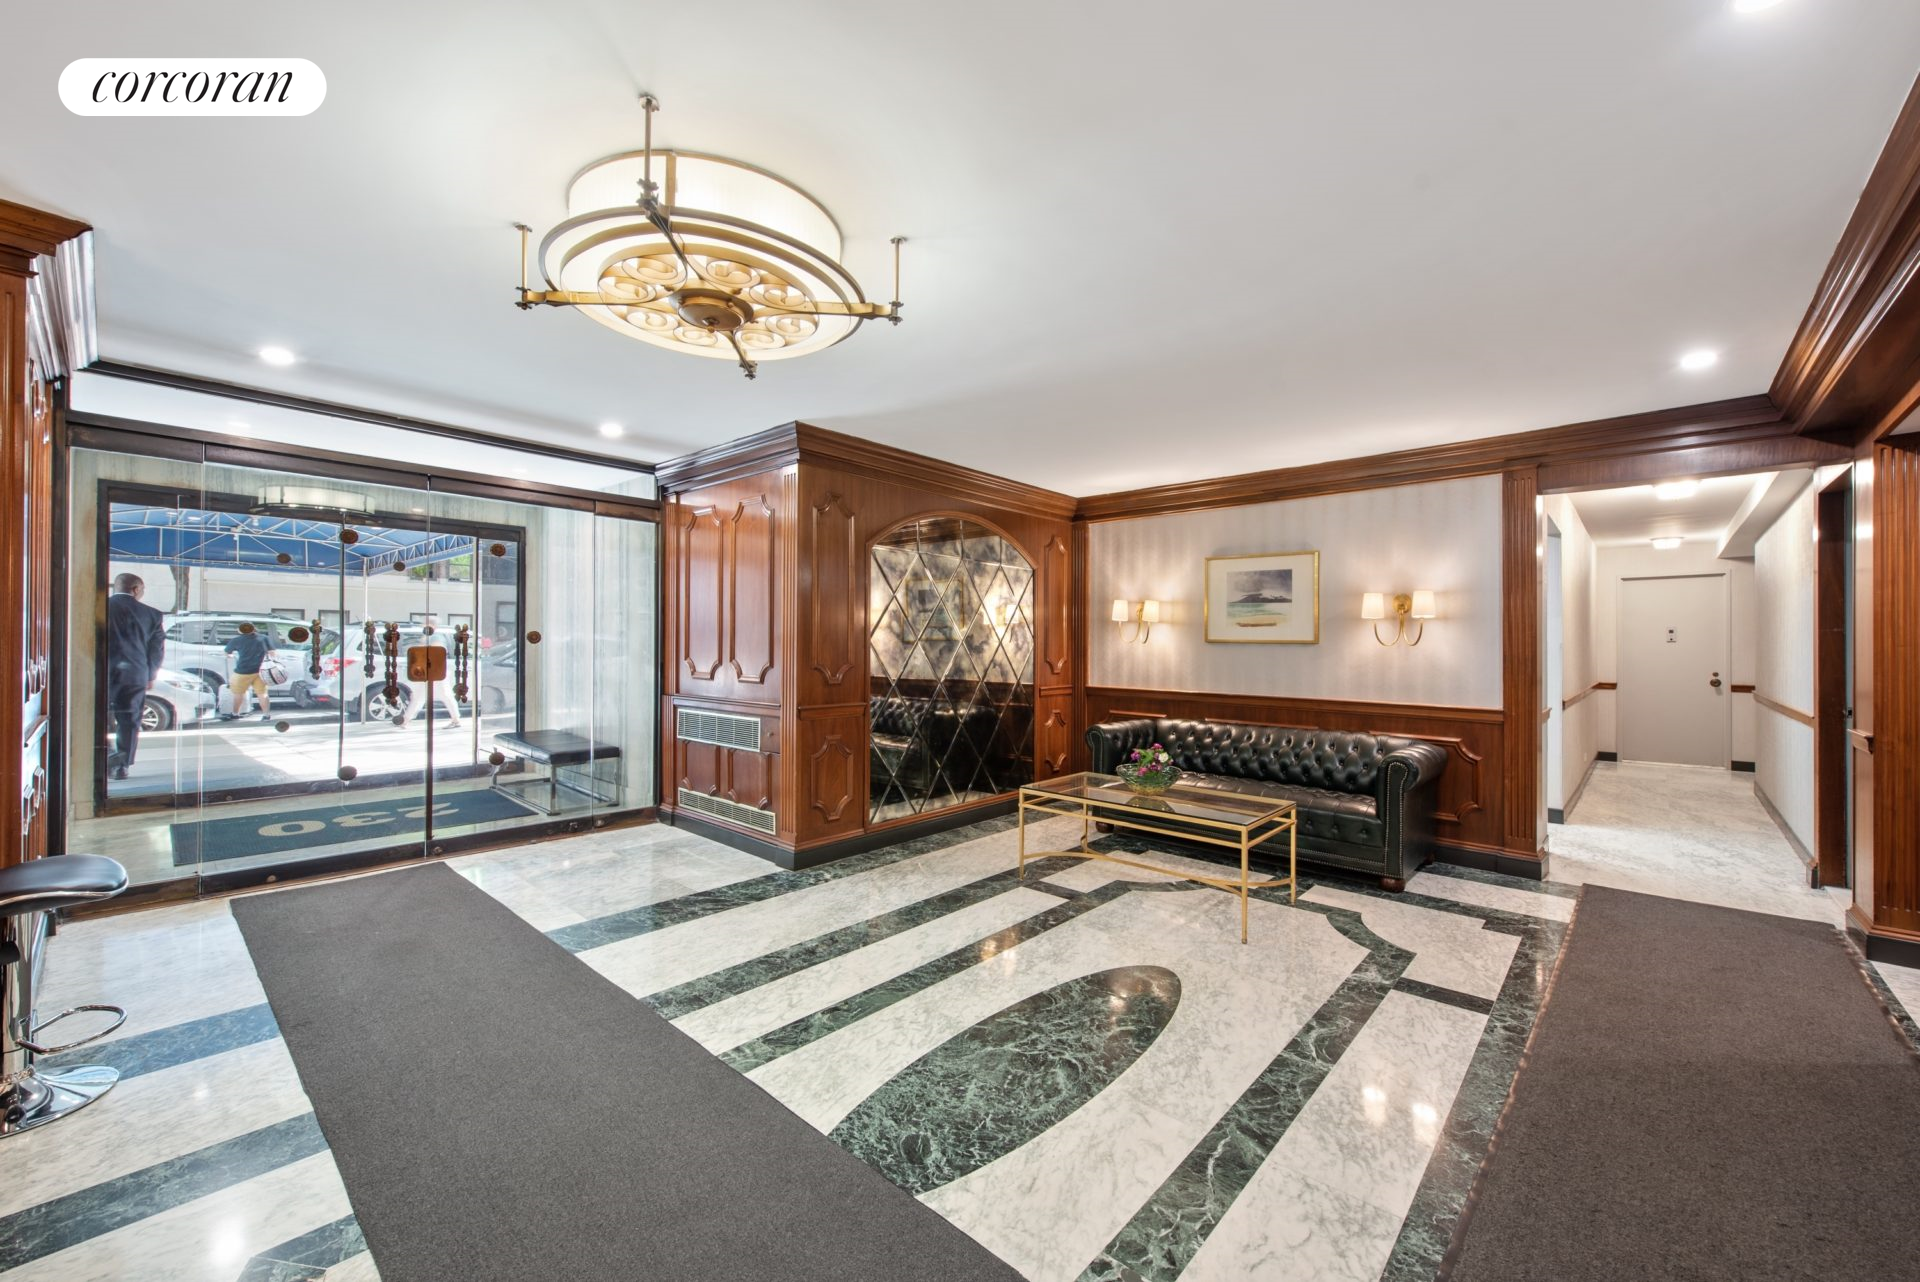 230 East 79th Street Upper East Side New York NY 10075